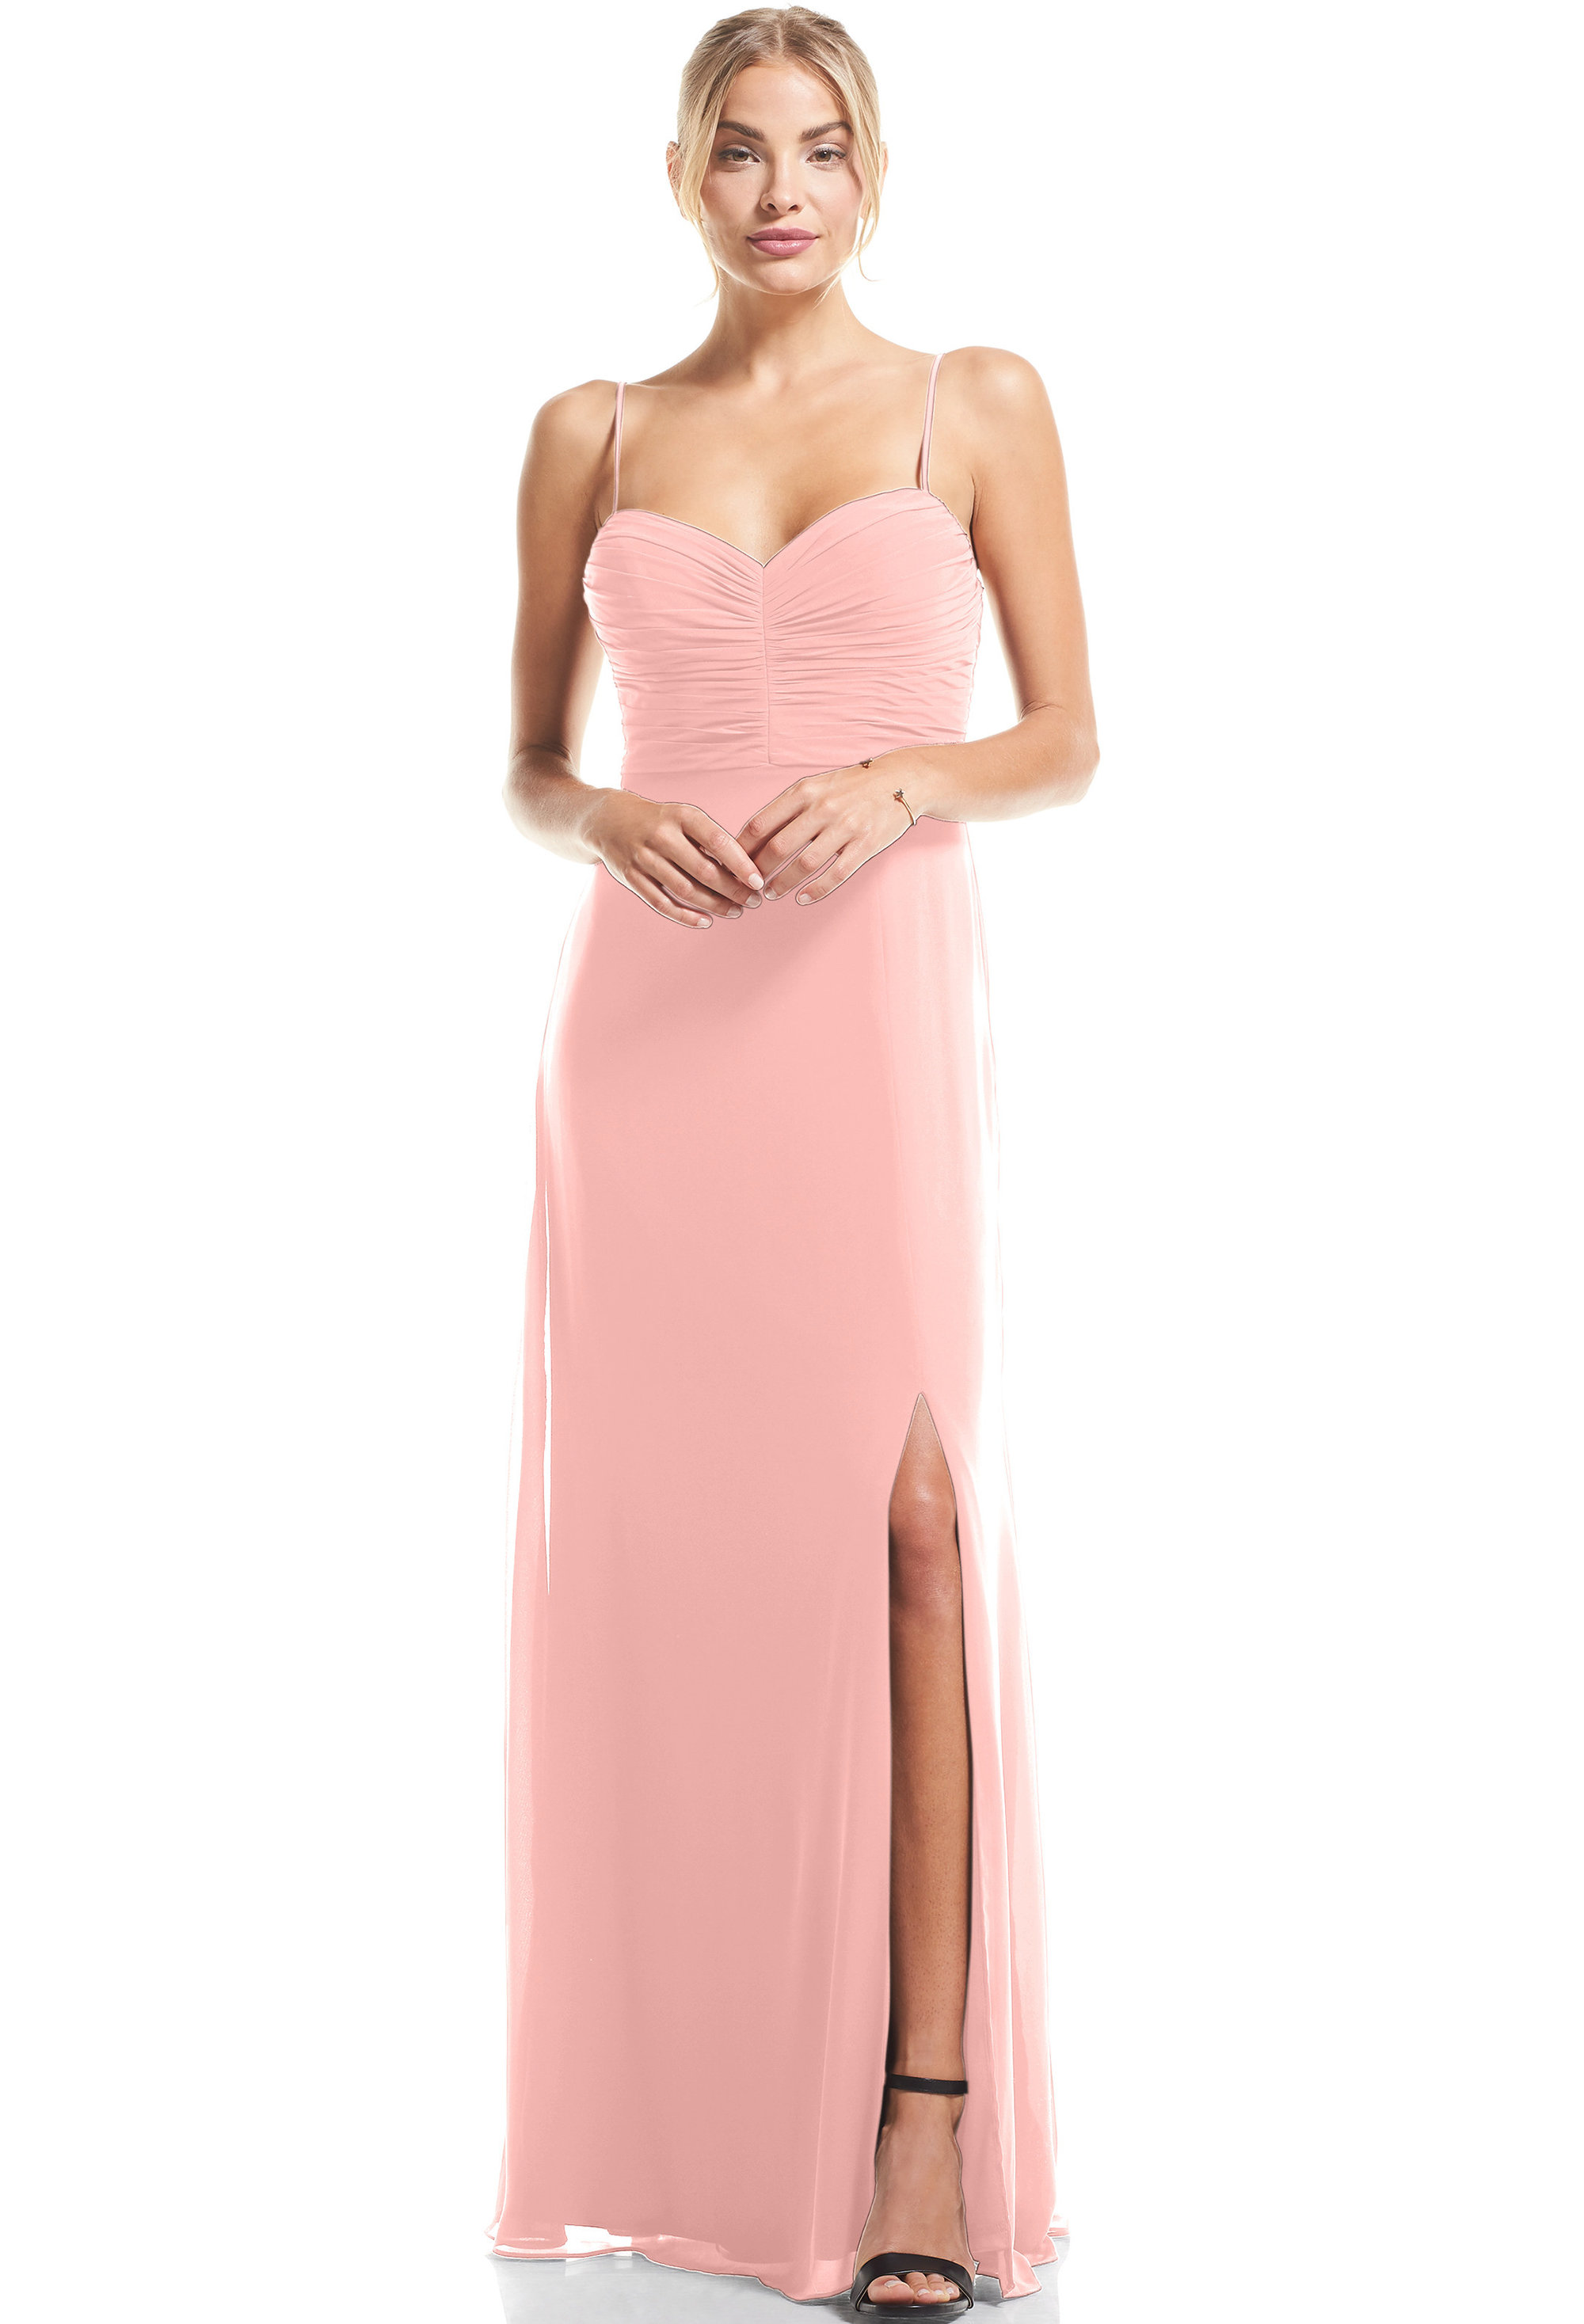 Bill Levkoff FROST ROSE Chiffon Sweetheart A-Line gown, $79.00 Front